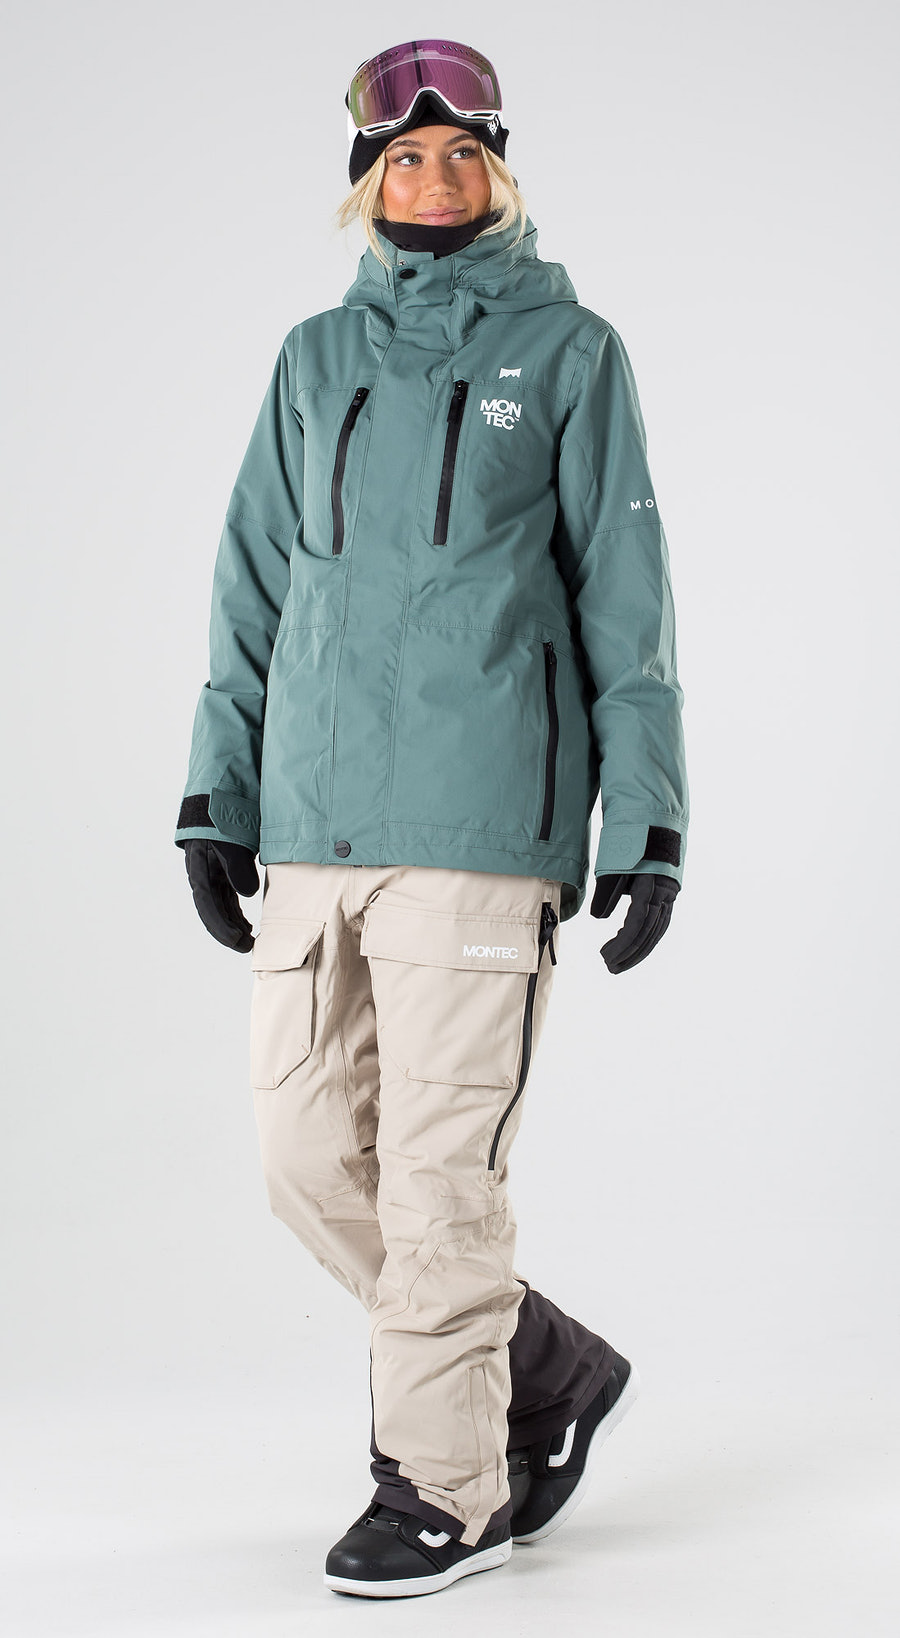 Montec Fawk W Atlantic Snowboard clothing Multi